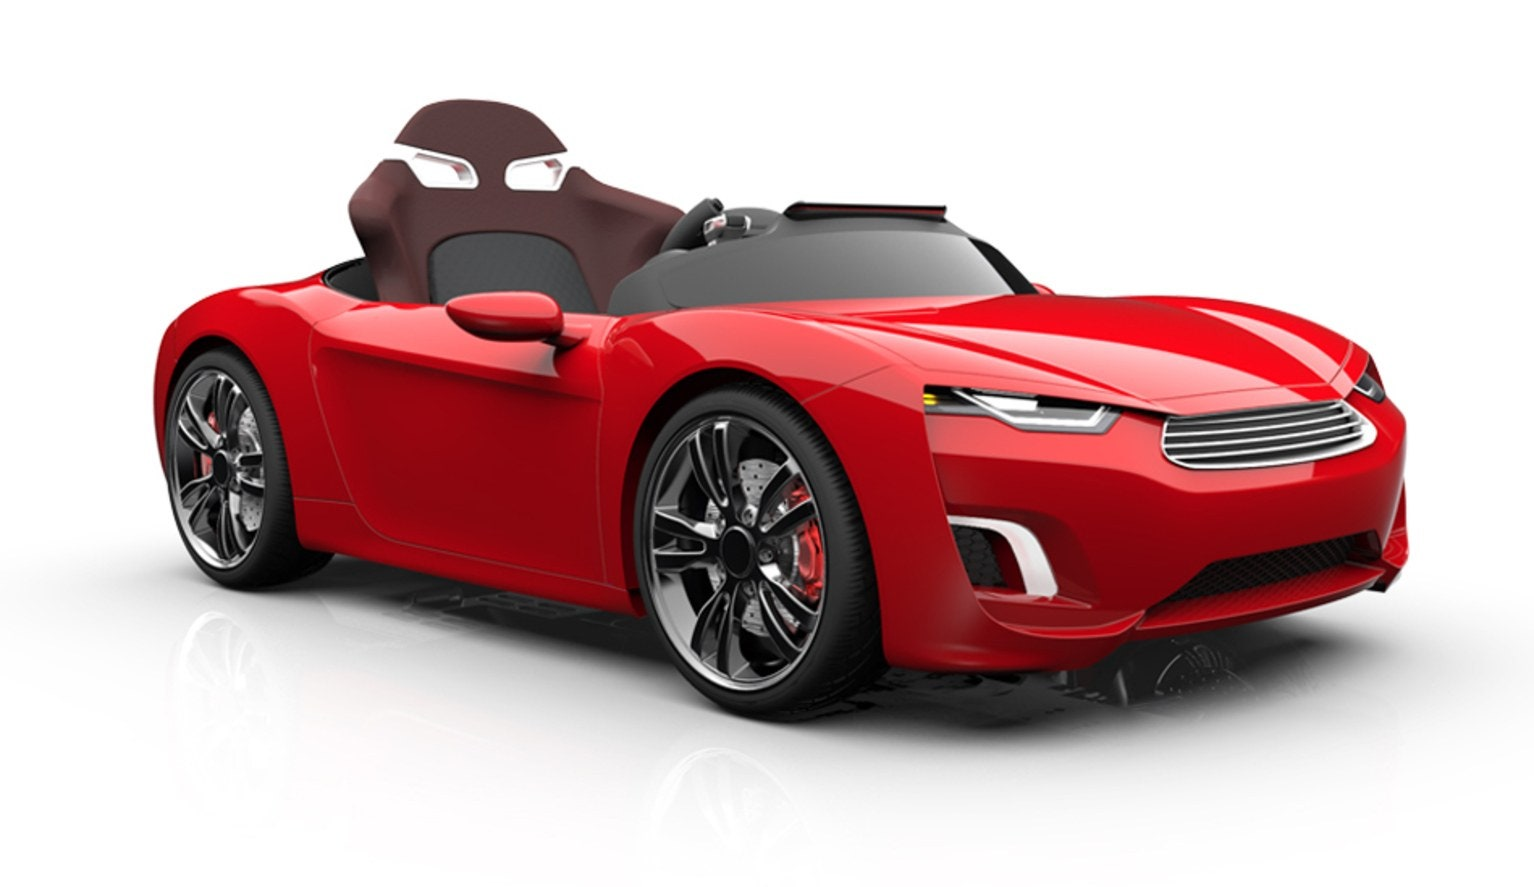 Luxury Electric Car For Kids Comes With 4 Wheel Drive